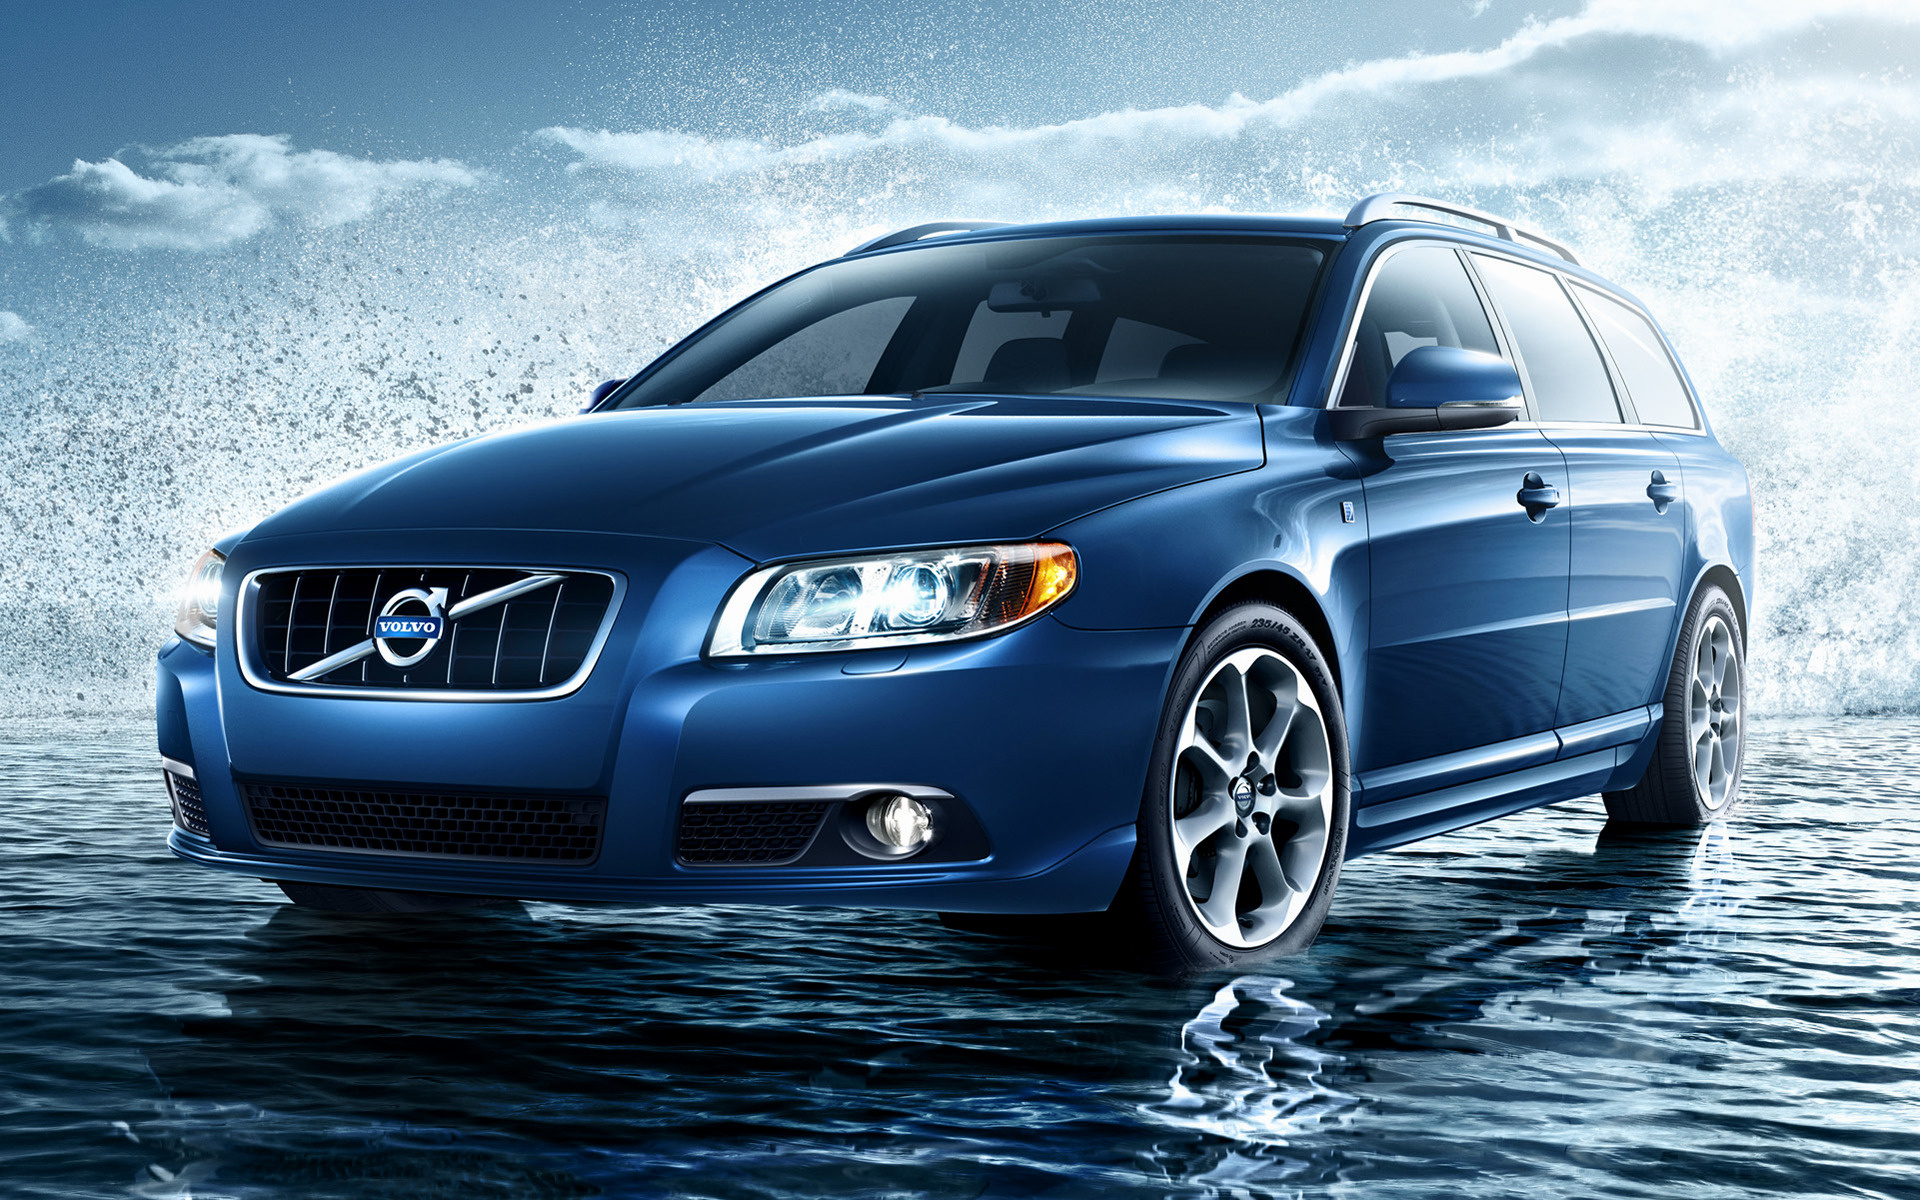 2011 Volvo V70 Ocean Race   Wallpapers and HD Images Car Pixel 1920x1200